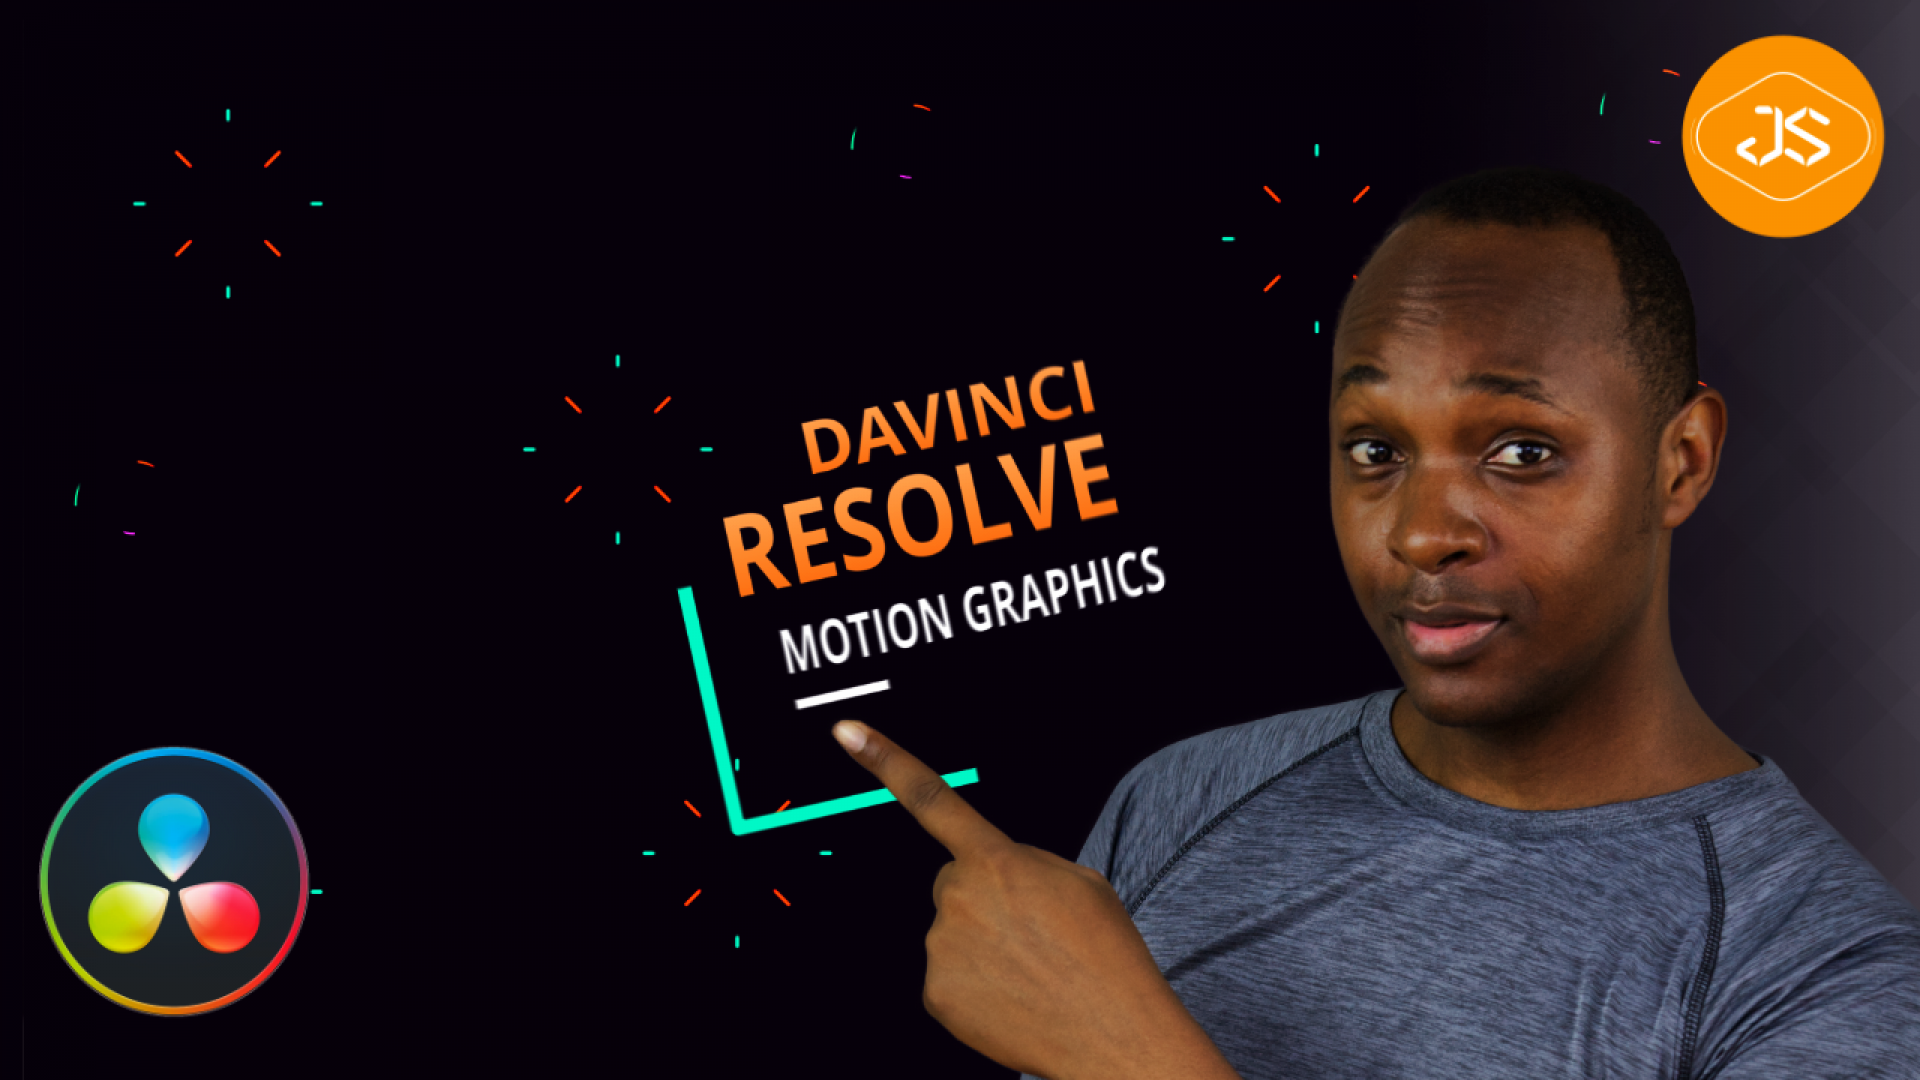 Technique d'animation Motion Graphics avec Davinci Resolve